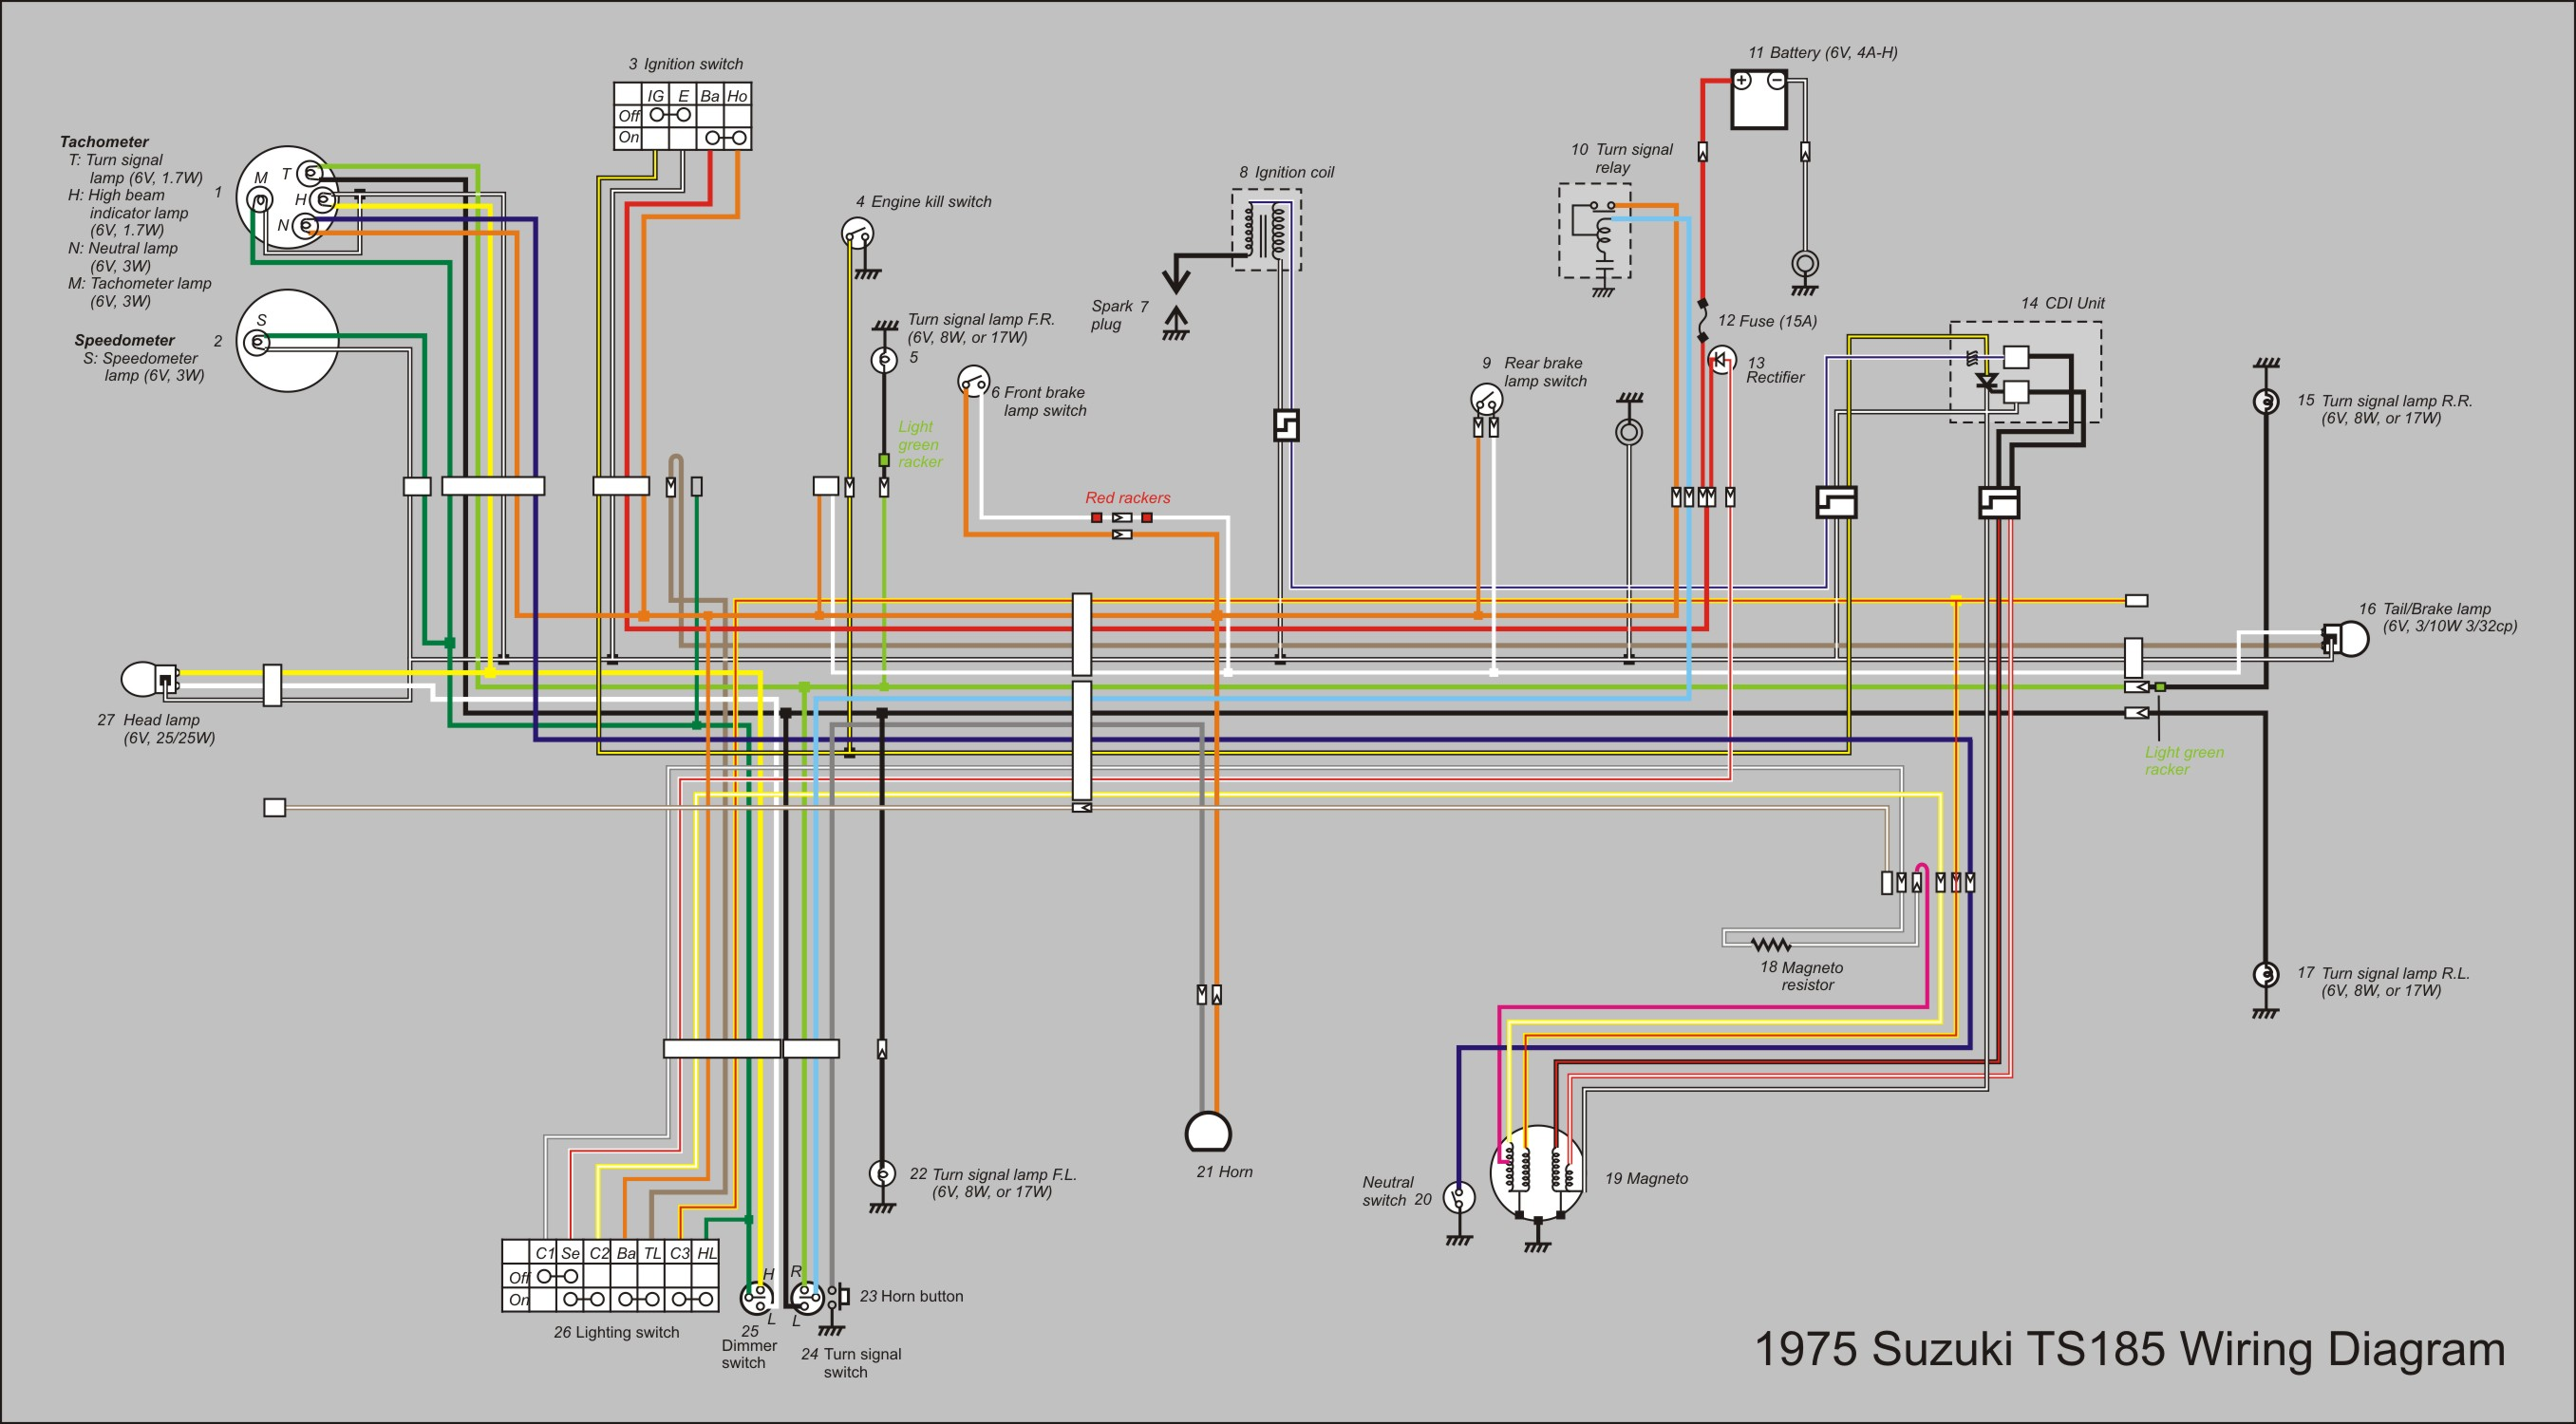 TS185_Wiring_Diagram_new file ts185 wiring diagram new jpg wikimedia commons find wiring diagram for 87 ford f 150 at soozxer.org